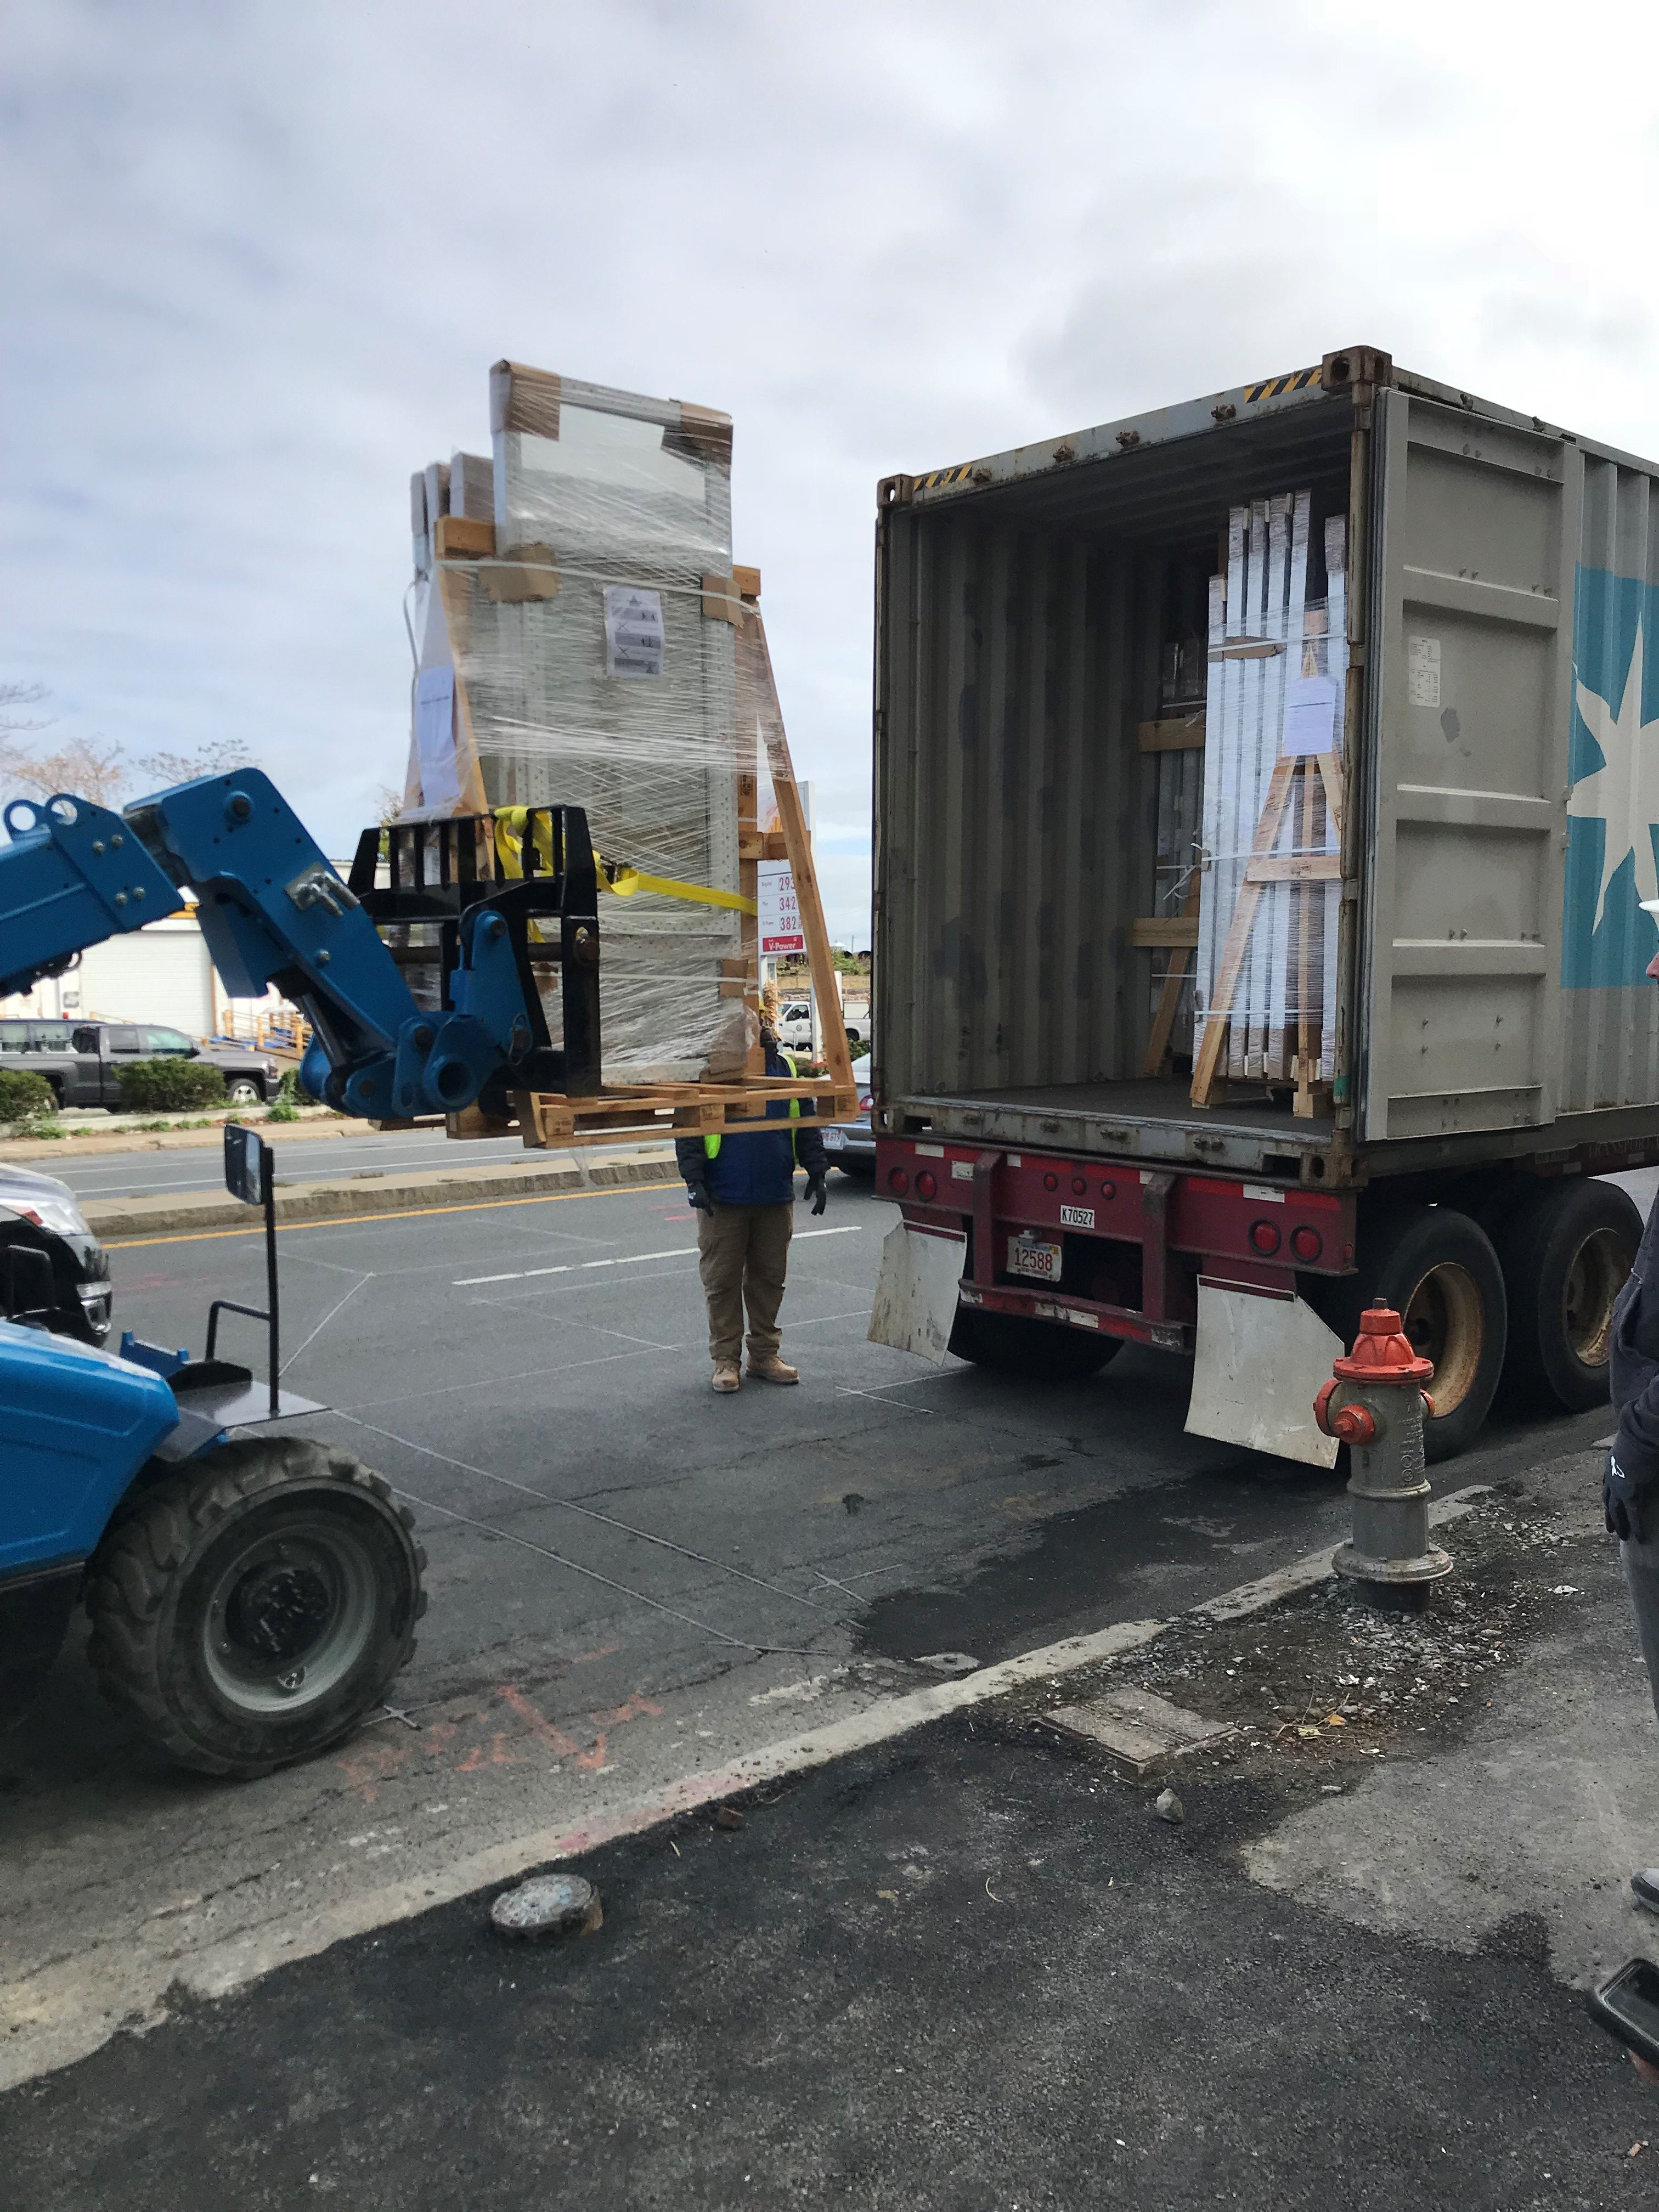 INTUS Windows arriving safe and sound to the site of Point 262 Condominiums!